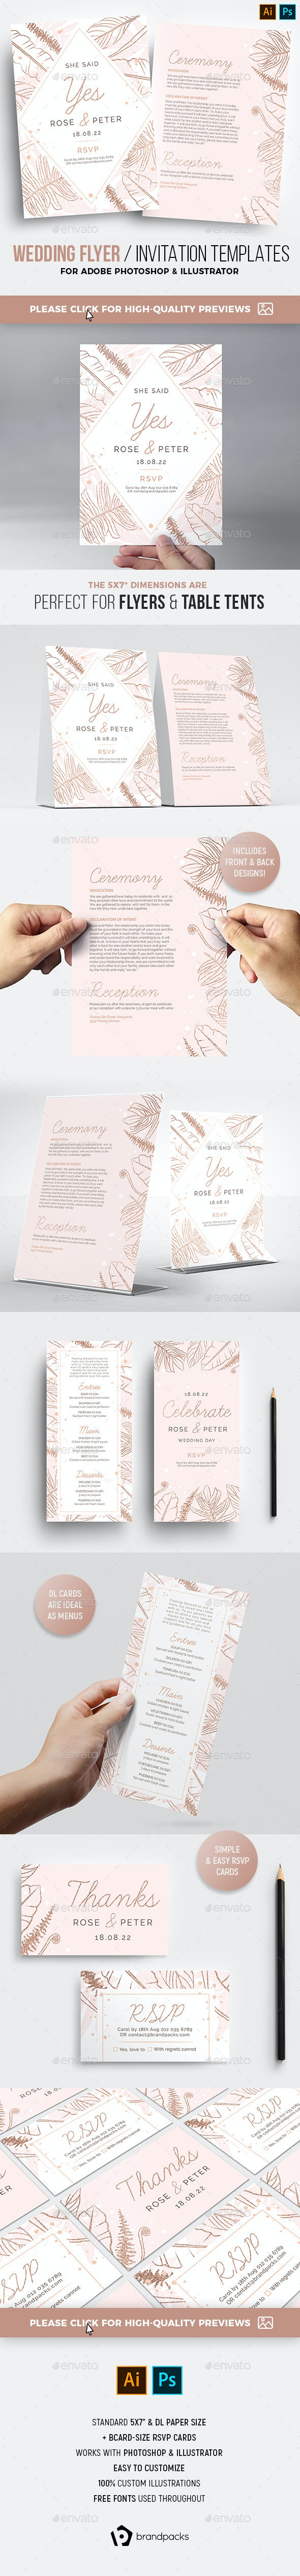 Wedding Flyer / Invite - Weddings Cards & Invites